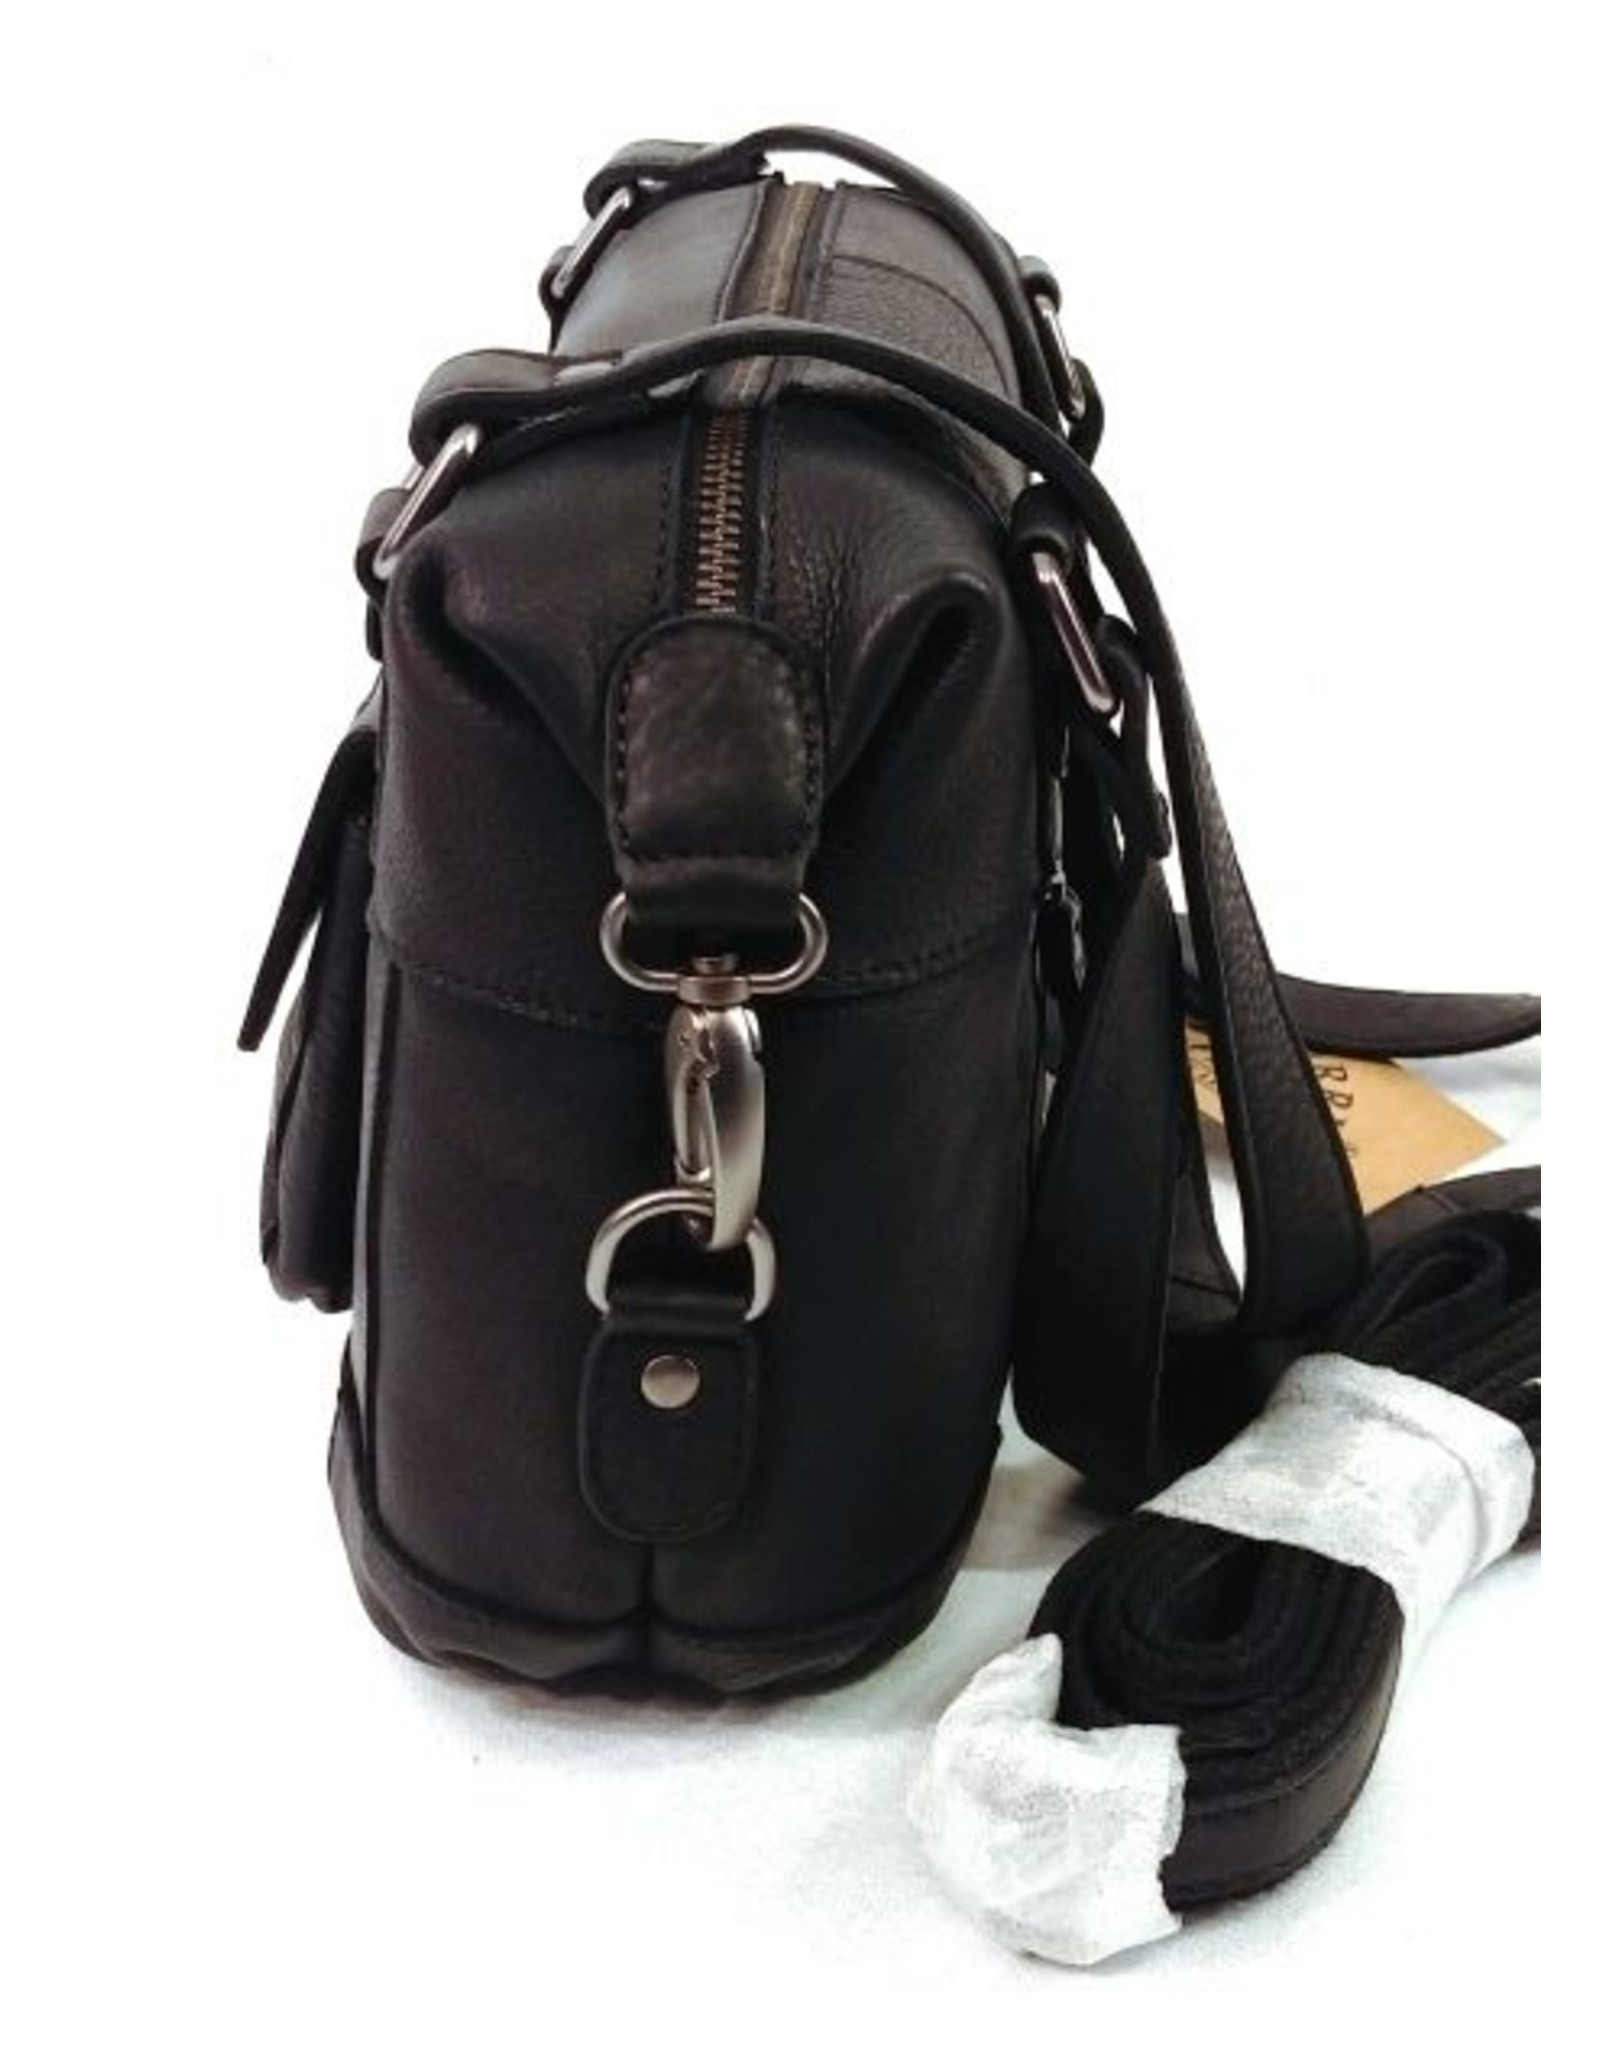 HillBurry Leather Shoulder bags  leather crossbody bags - HillBurry leather shoulder bag medium (black)